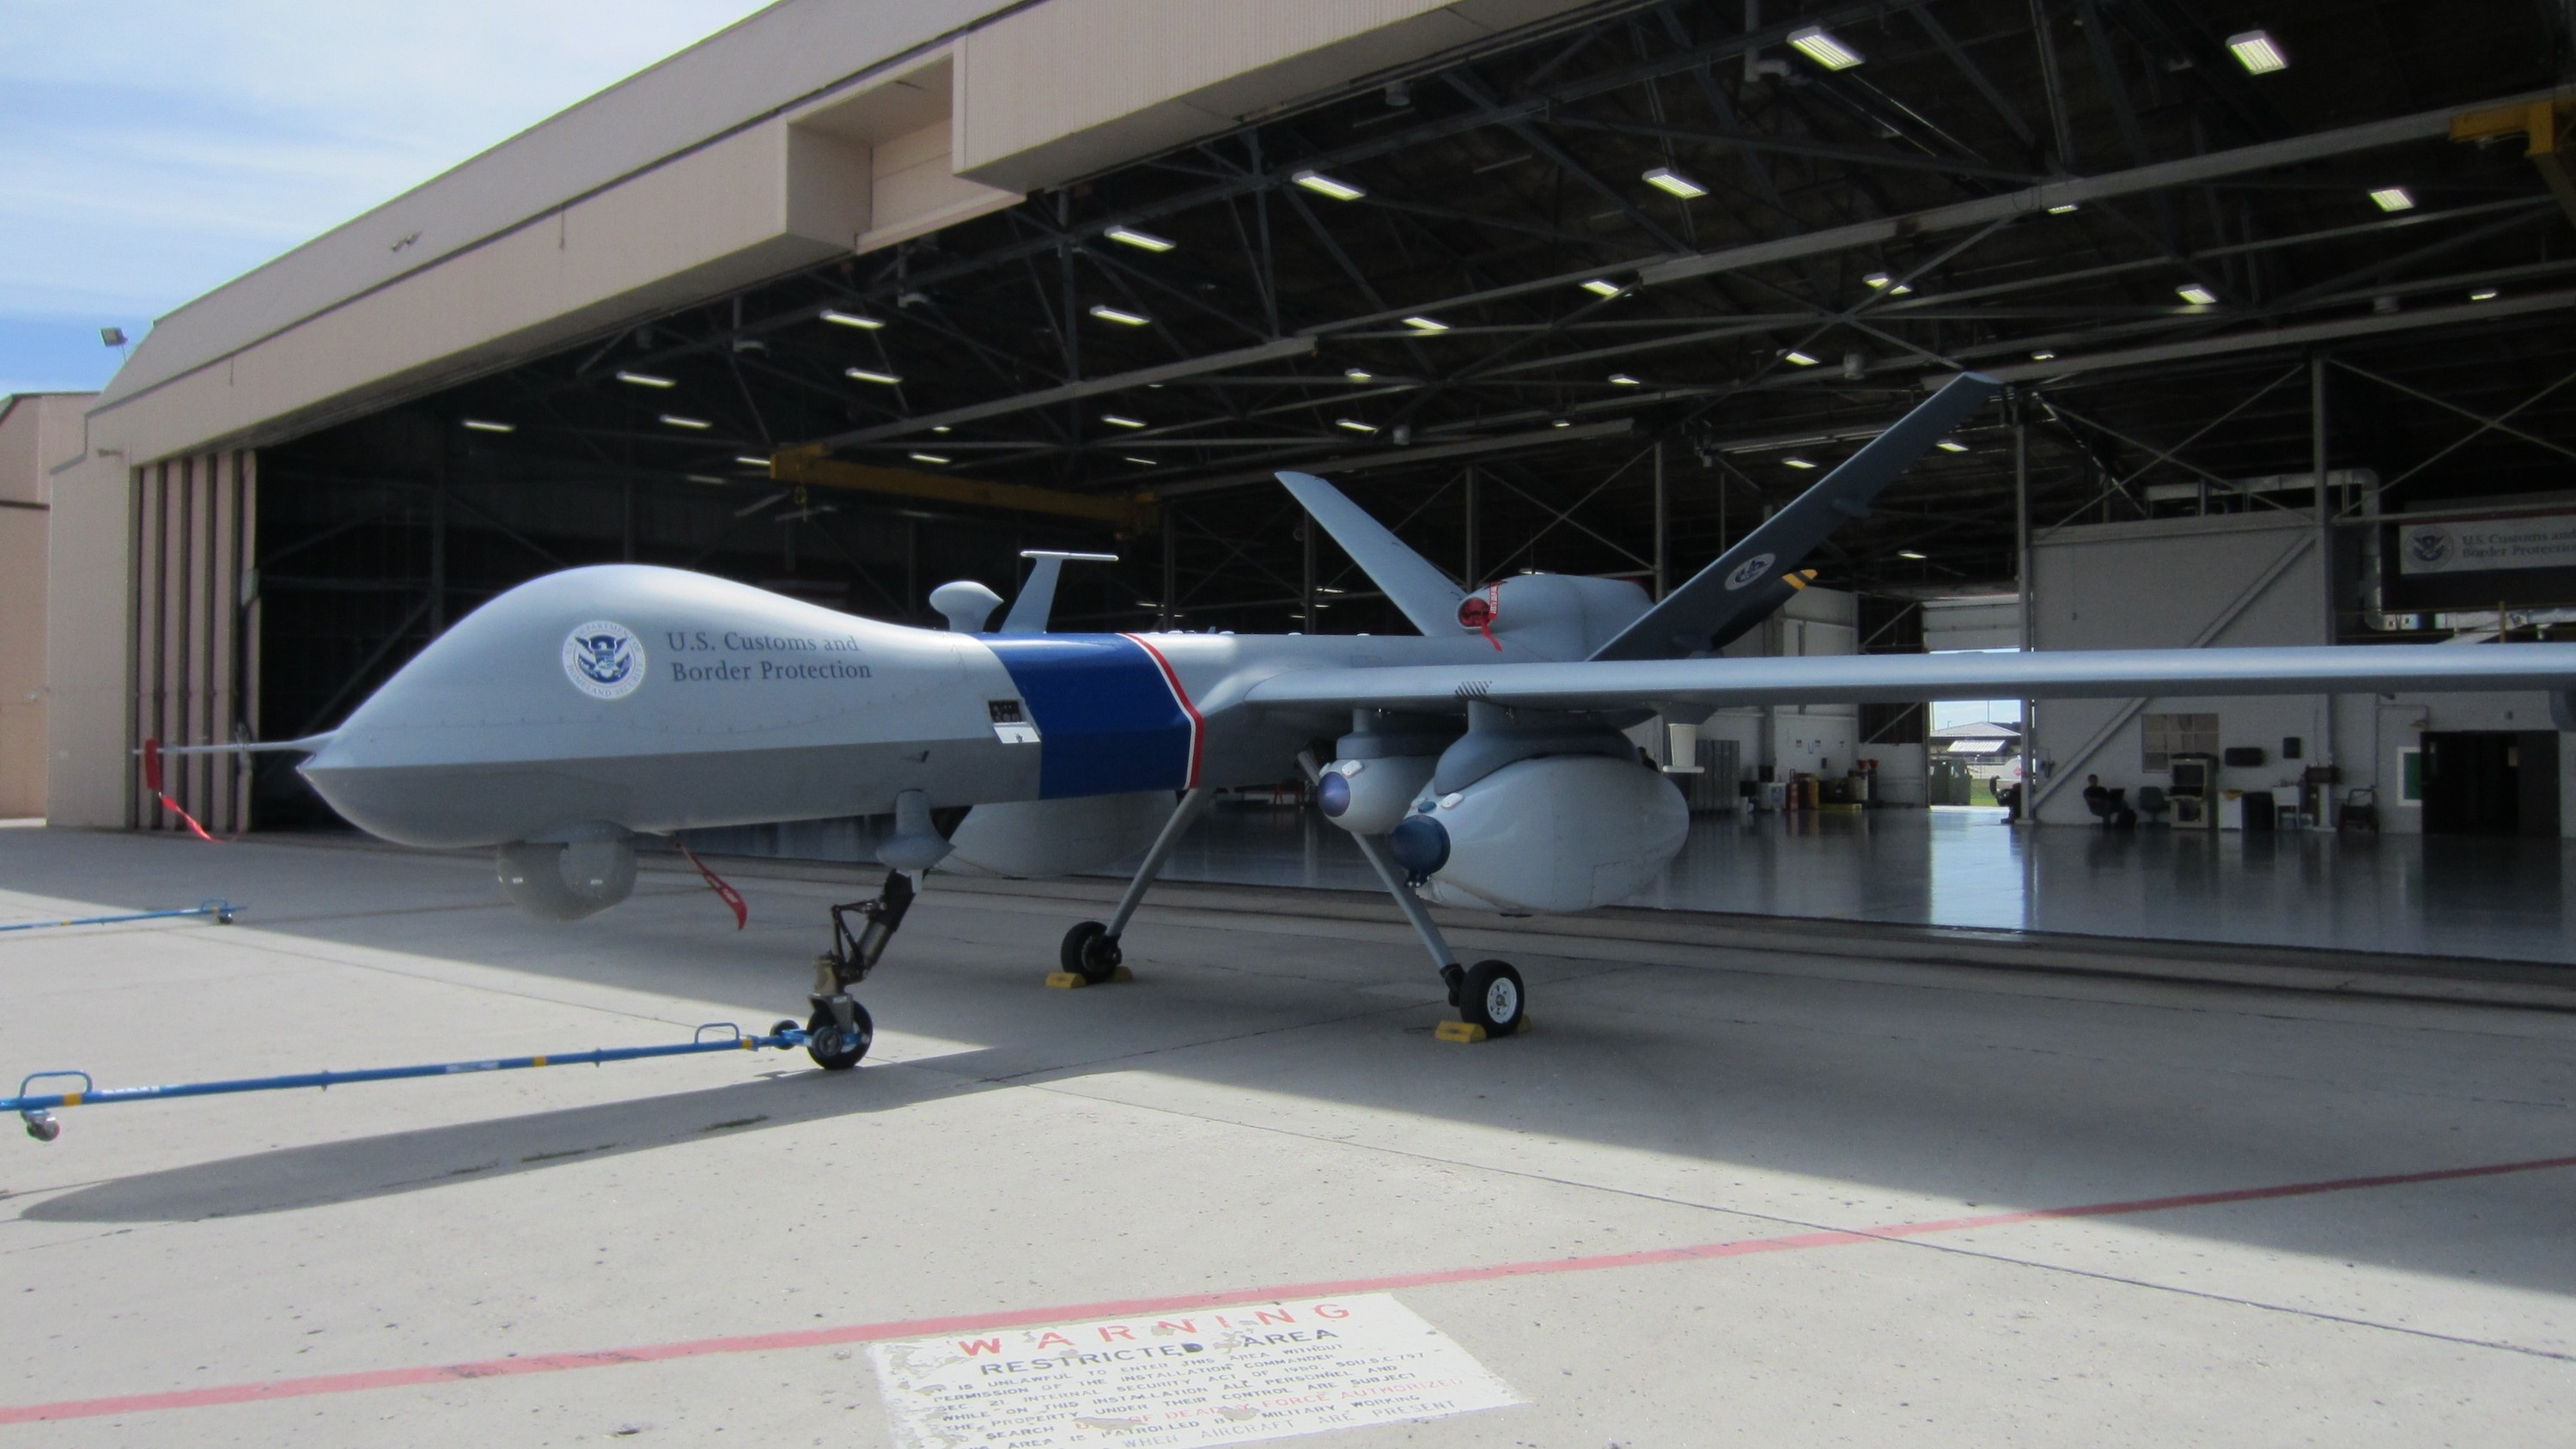 The Mystery of US Customs' Crashed Drone